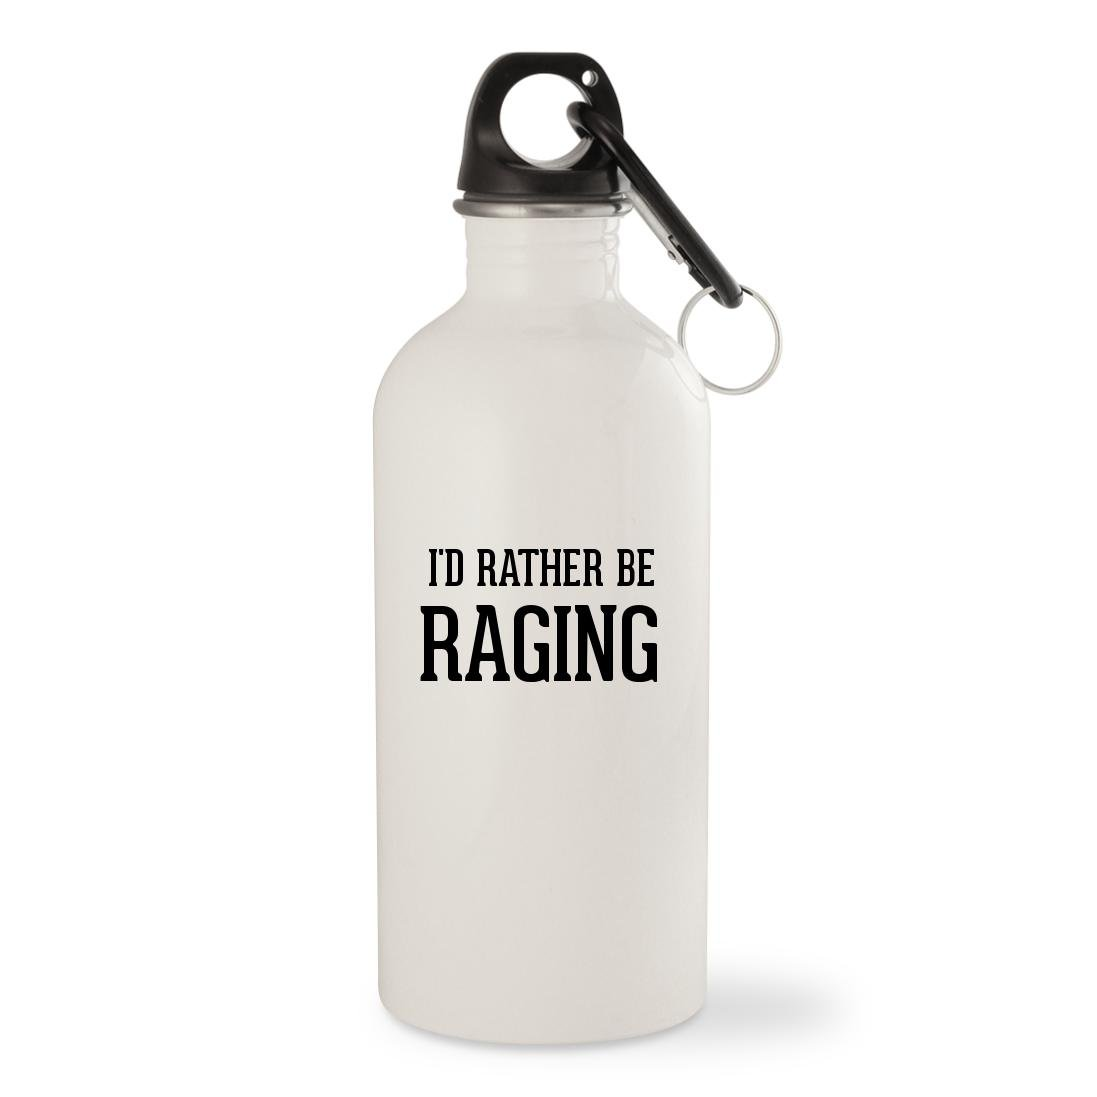 I'd Rather Be RAGING - White 20oz Stainless Steel Water Bottle with Carabiner